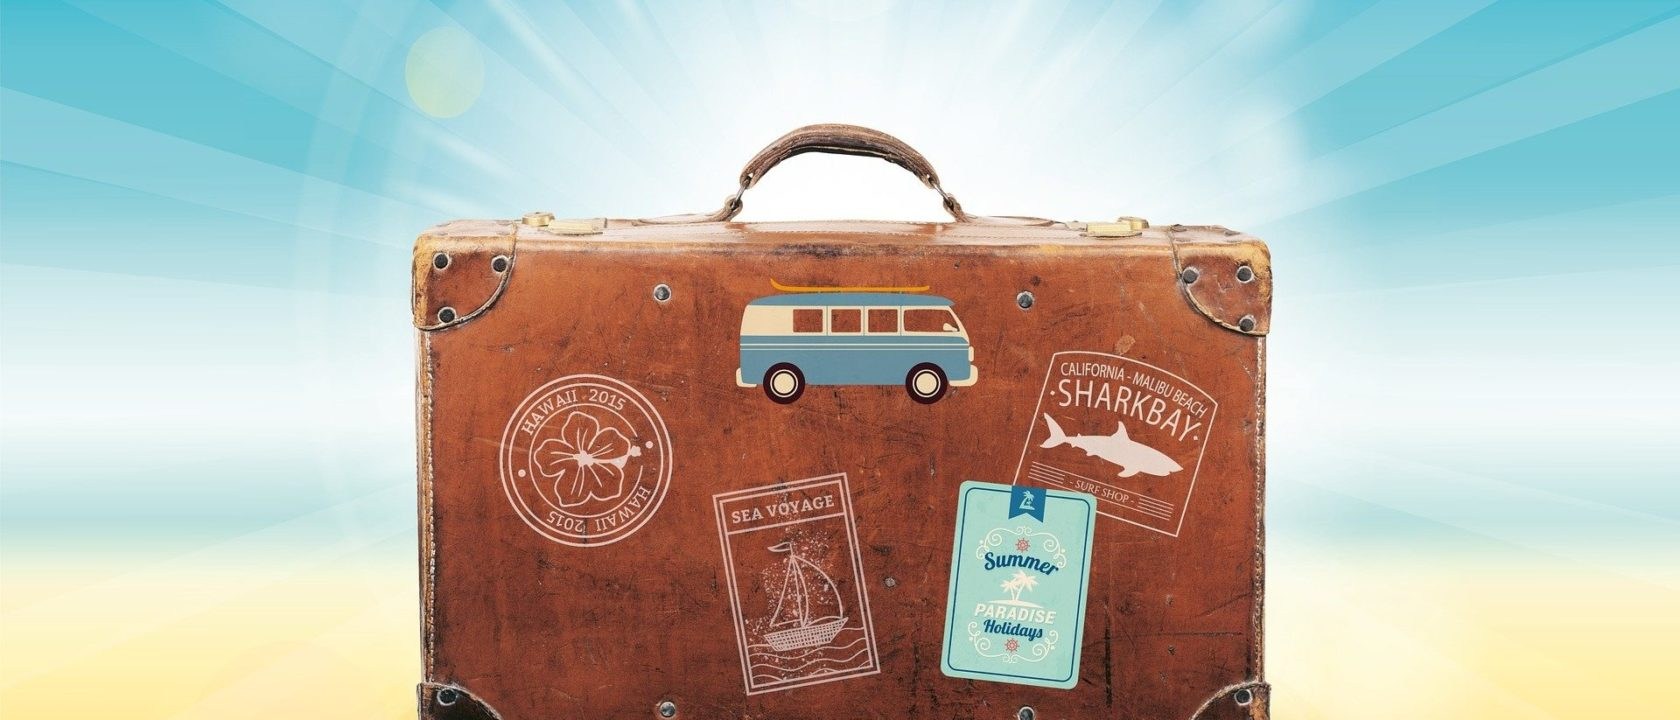 Sustainable and Responsible Traveling Tips